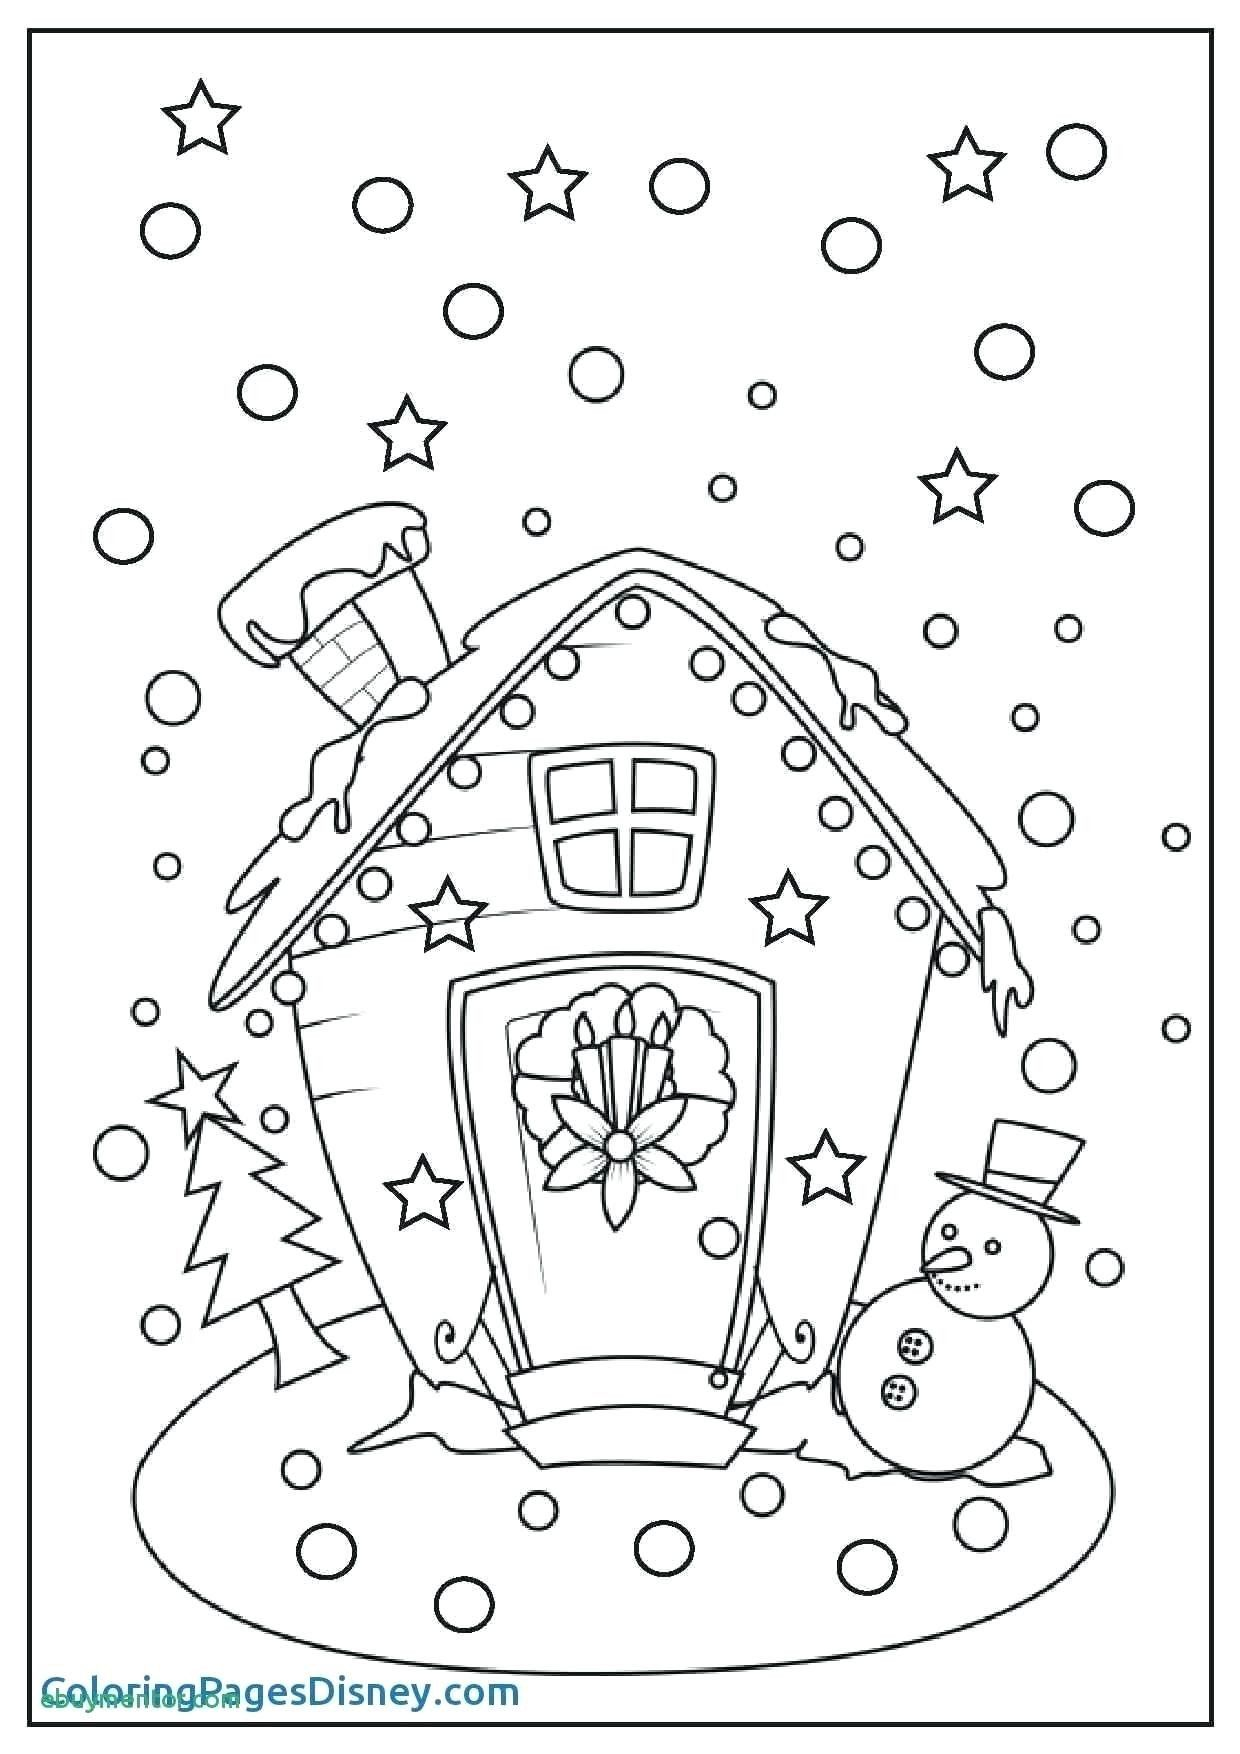 Theme Worksheets For 3rd Grade Coloring Worksheet Ideasloring Tremend In 2020 Printable Christmas Coloring Pages Christmas Coloring Sheets Coloring Pages Inspirational